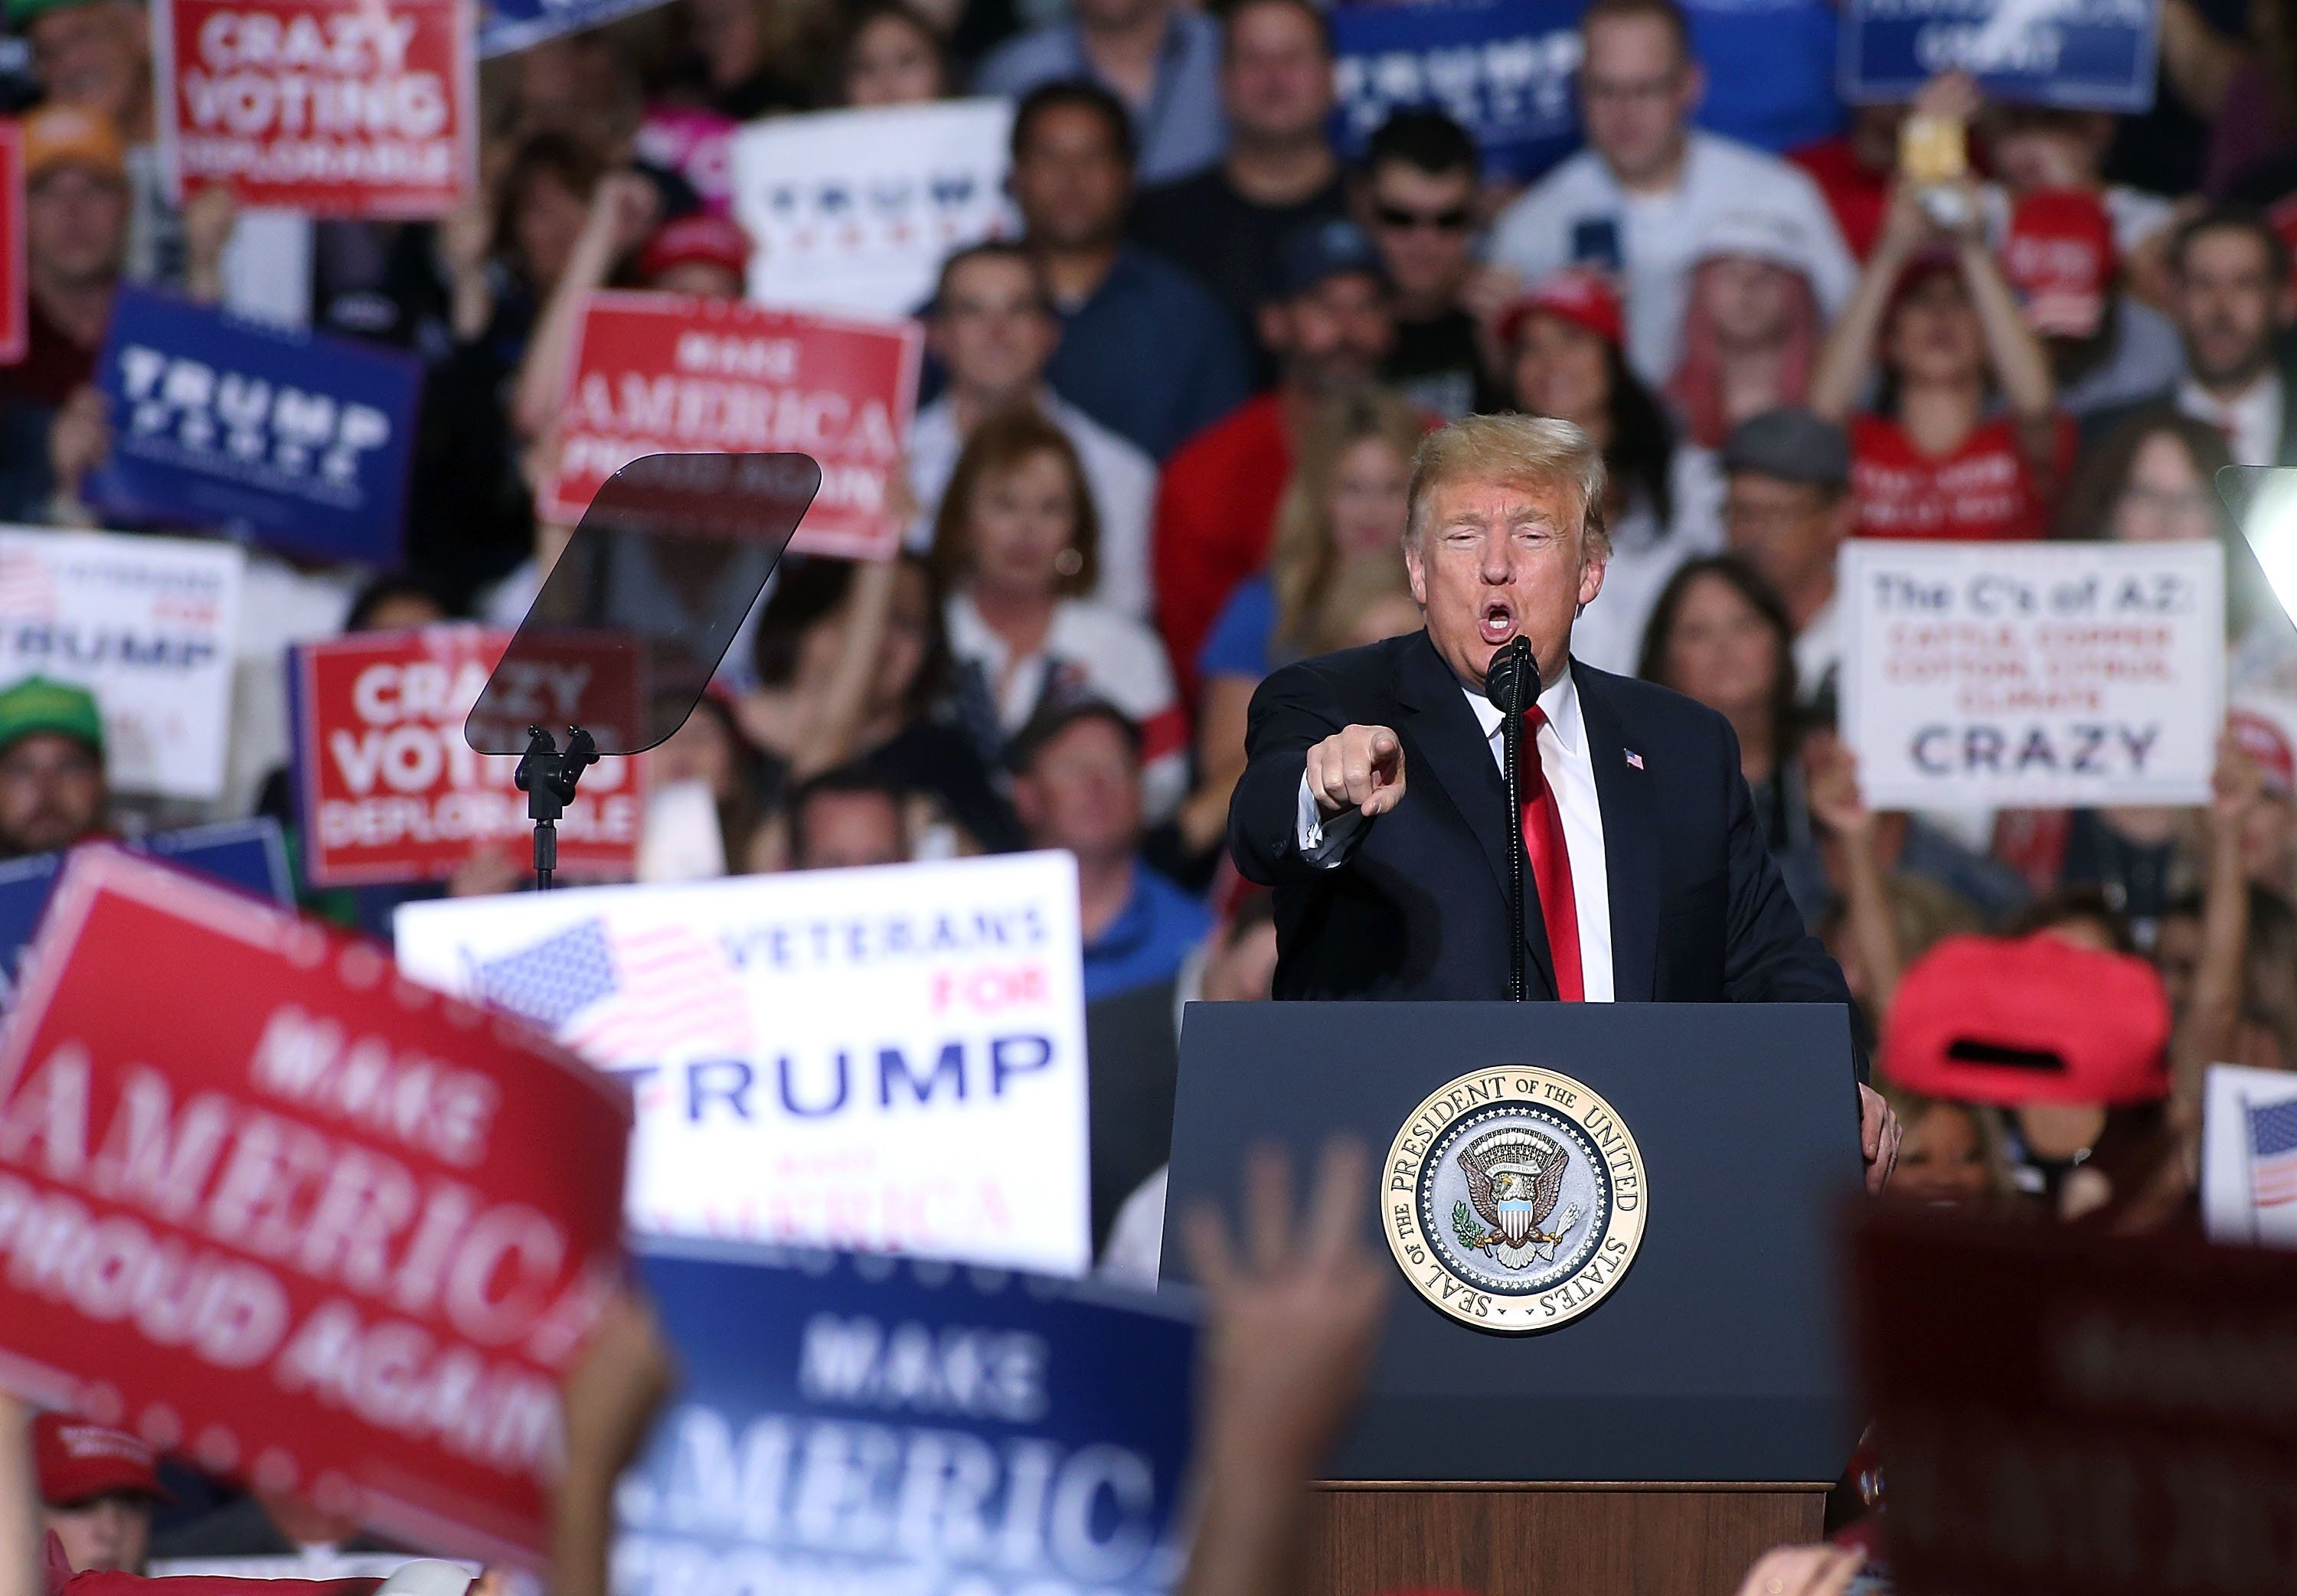 MESA, AZ - OCTOBER 19:  President Donald Trump speaks to a crowd of supporters during a rally at the International Air Response facility on October 19, 2018 in Mesa, Arizona.  President Trump is holding rallies in Arizona, Montana and Nevada, campaigning for Republican candidates running for the U.S. Senate. (Photo by Ralph Freso/Getty Images)